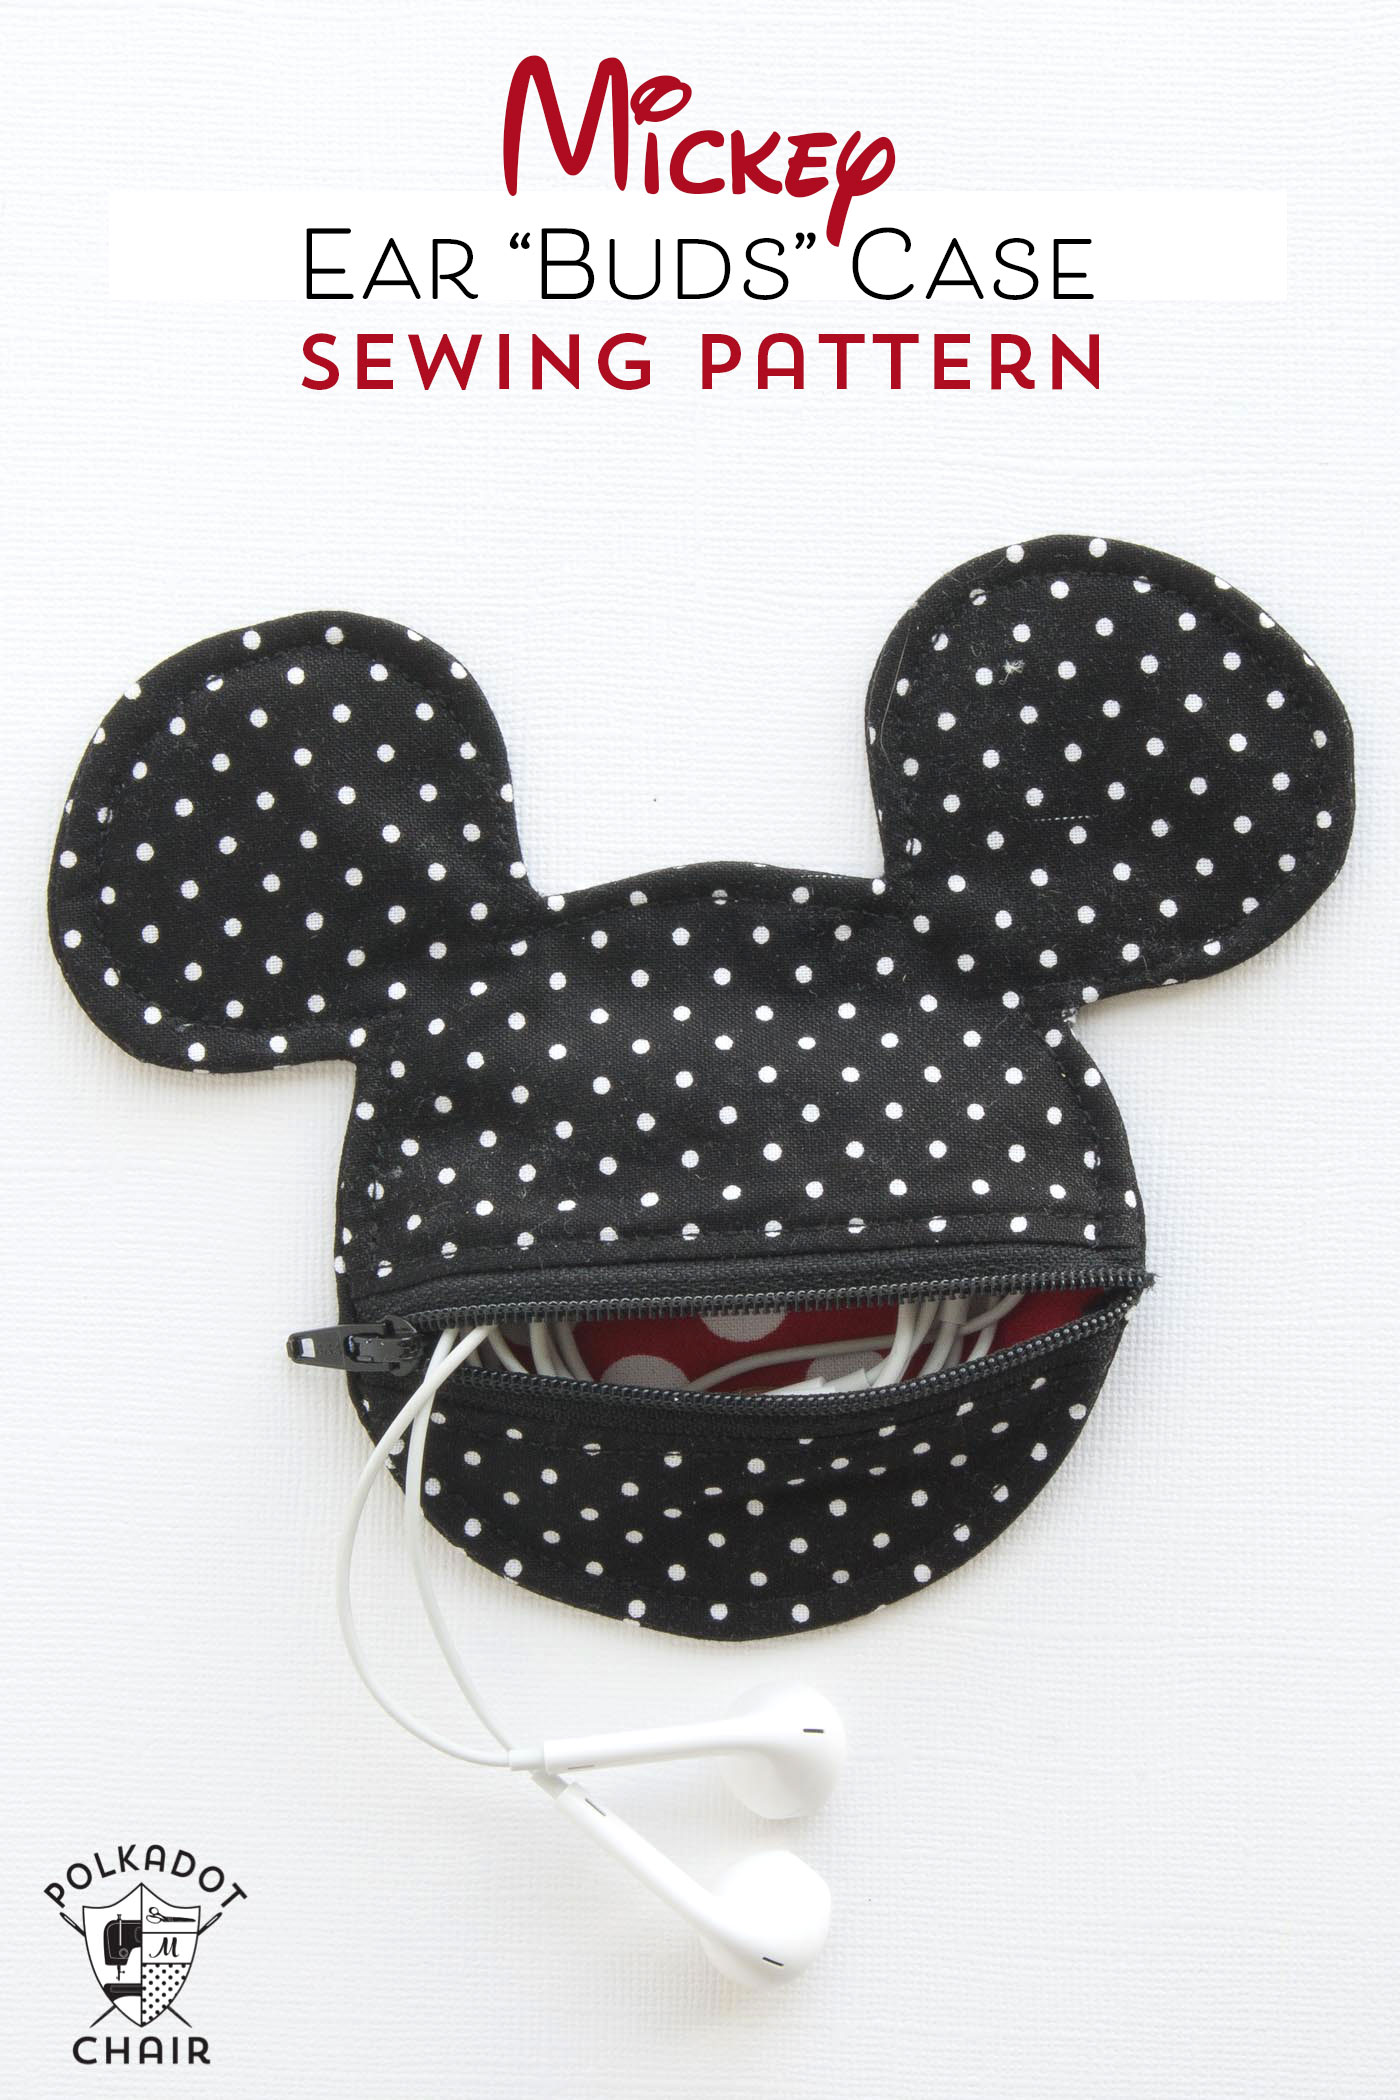 MICKEY MOUSE INSPIRED EARBUD POUCH from Polka Dot Chair